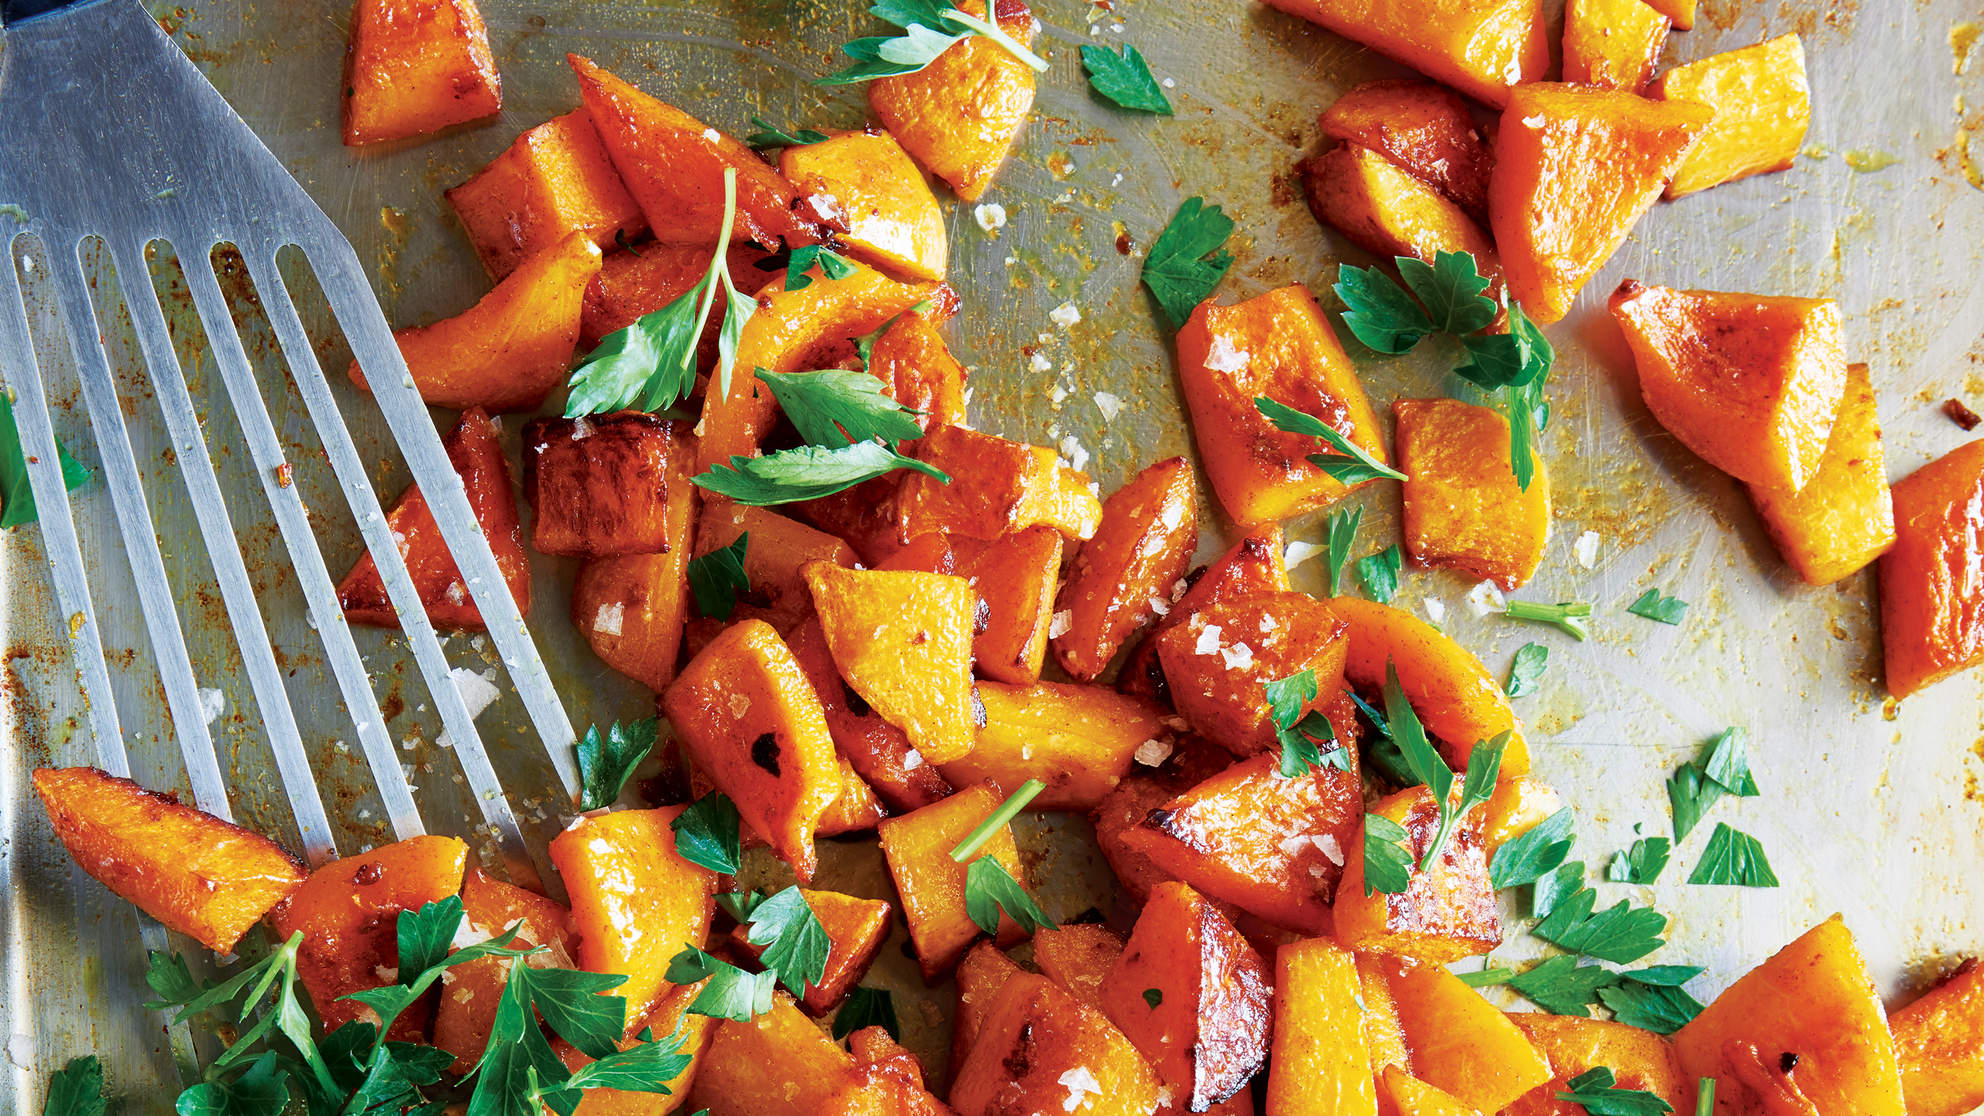 moroccan-squash-warm-up-fall-recipes